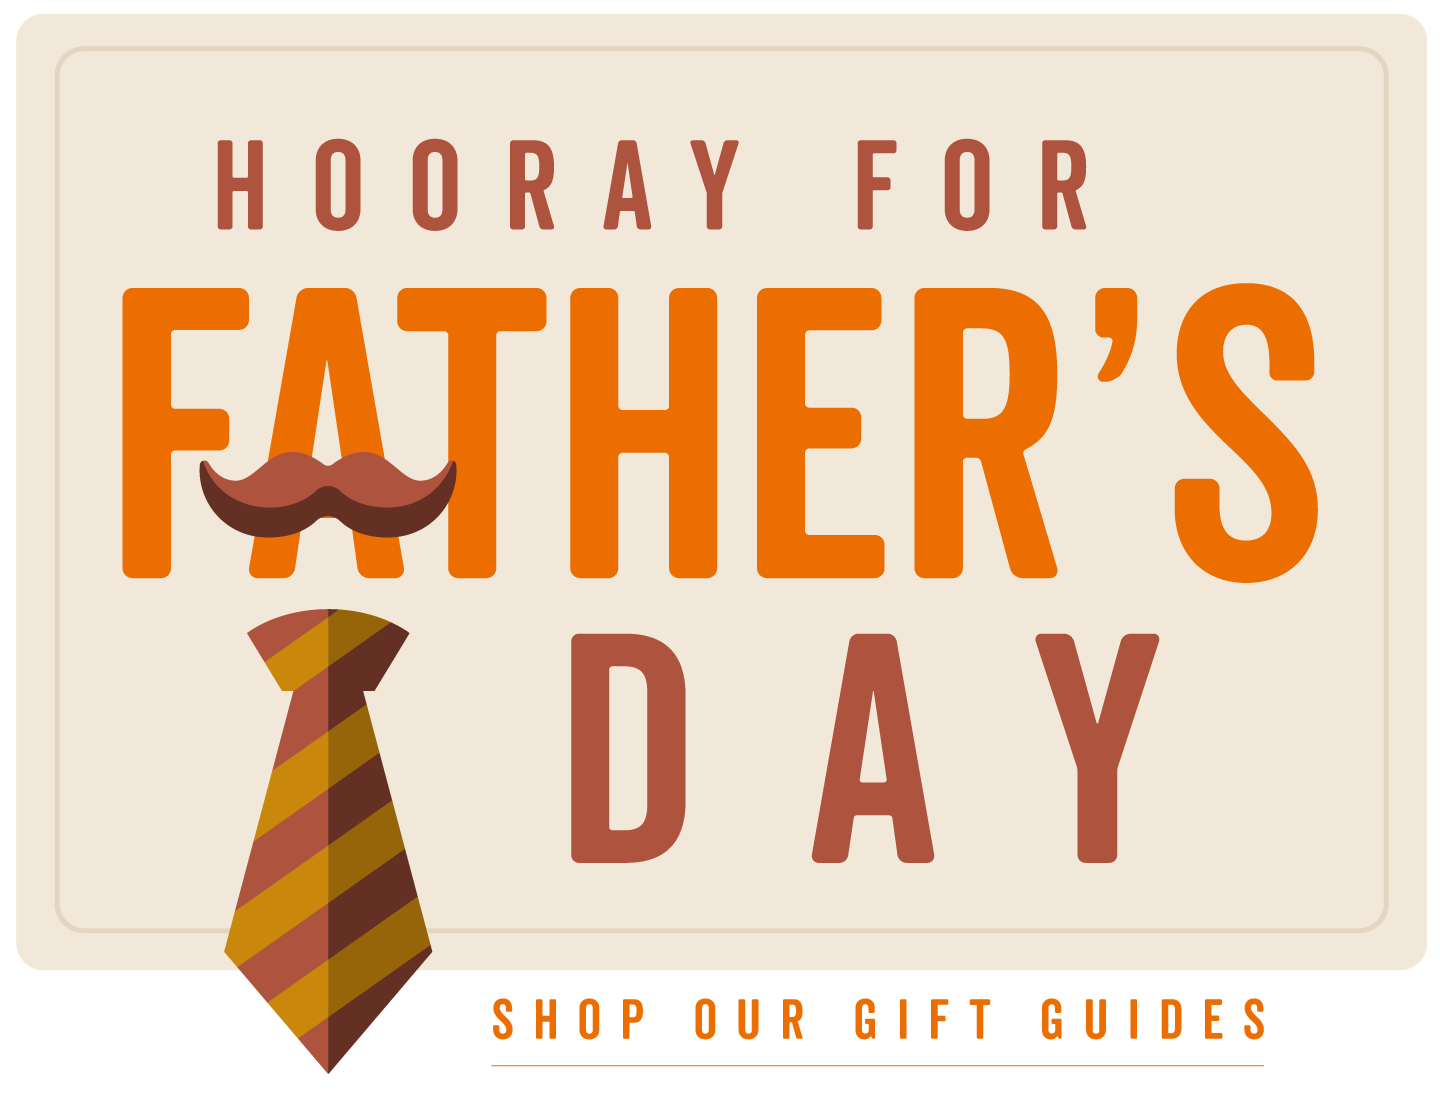 Hooray for Father's Day Gift Guides